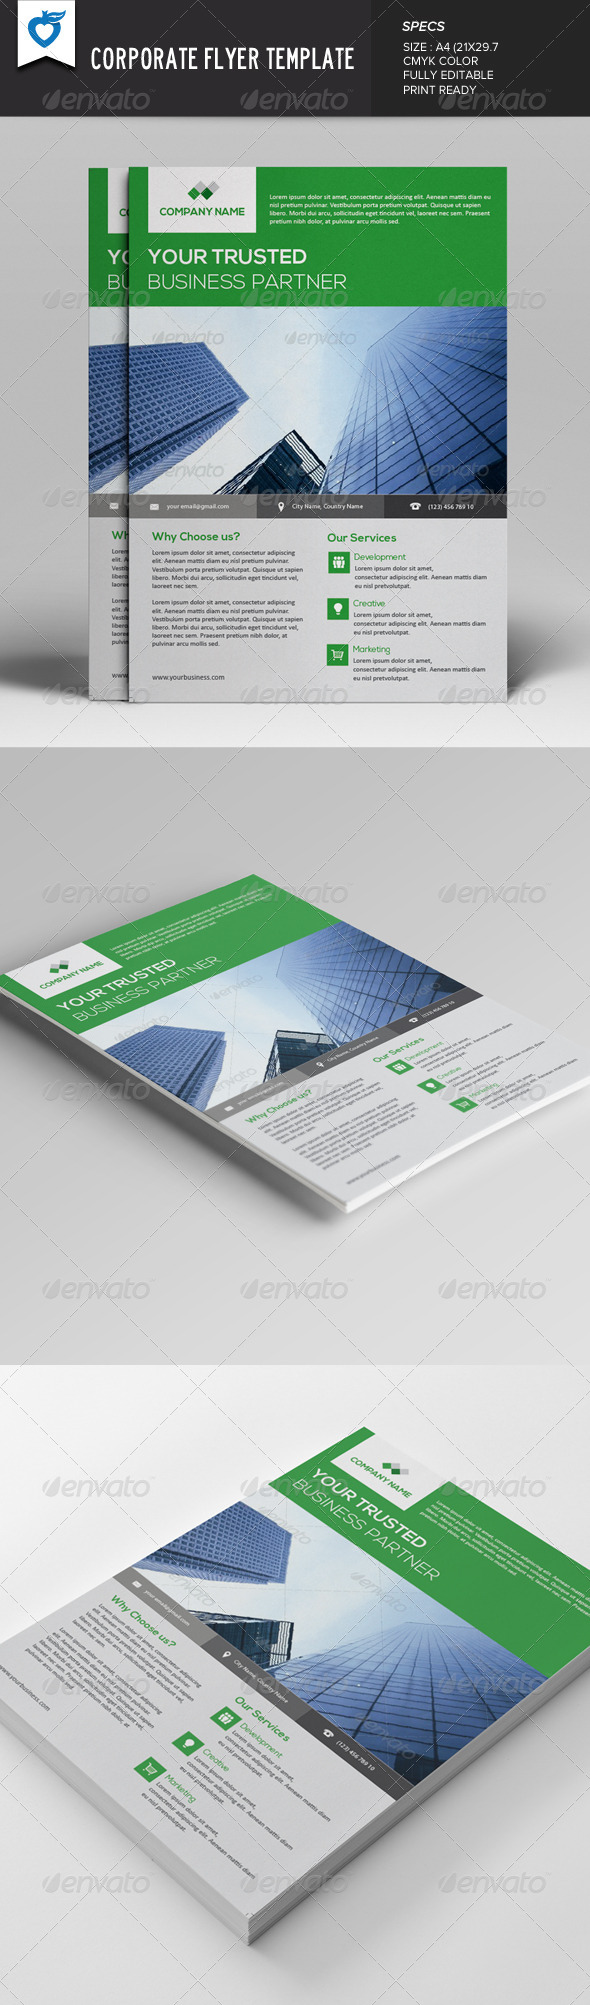 GraphicRiver Corporate Flyer v2 7844722